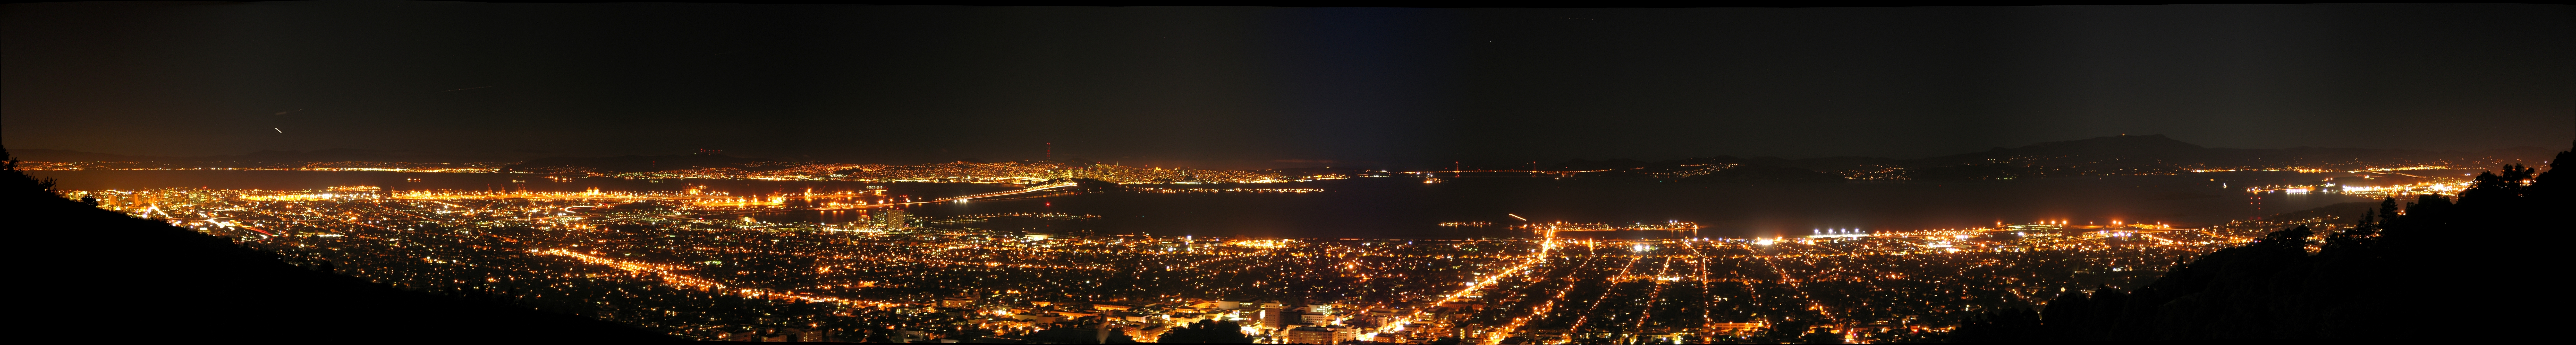 pano san Francisco bay HD Wallpaper